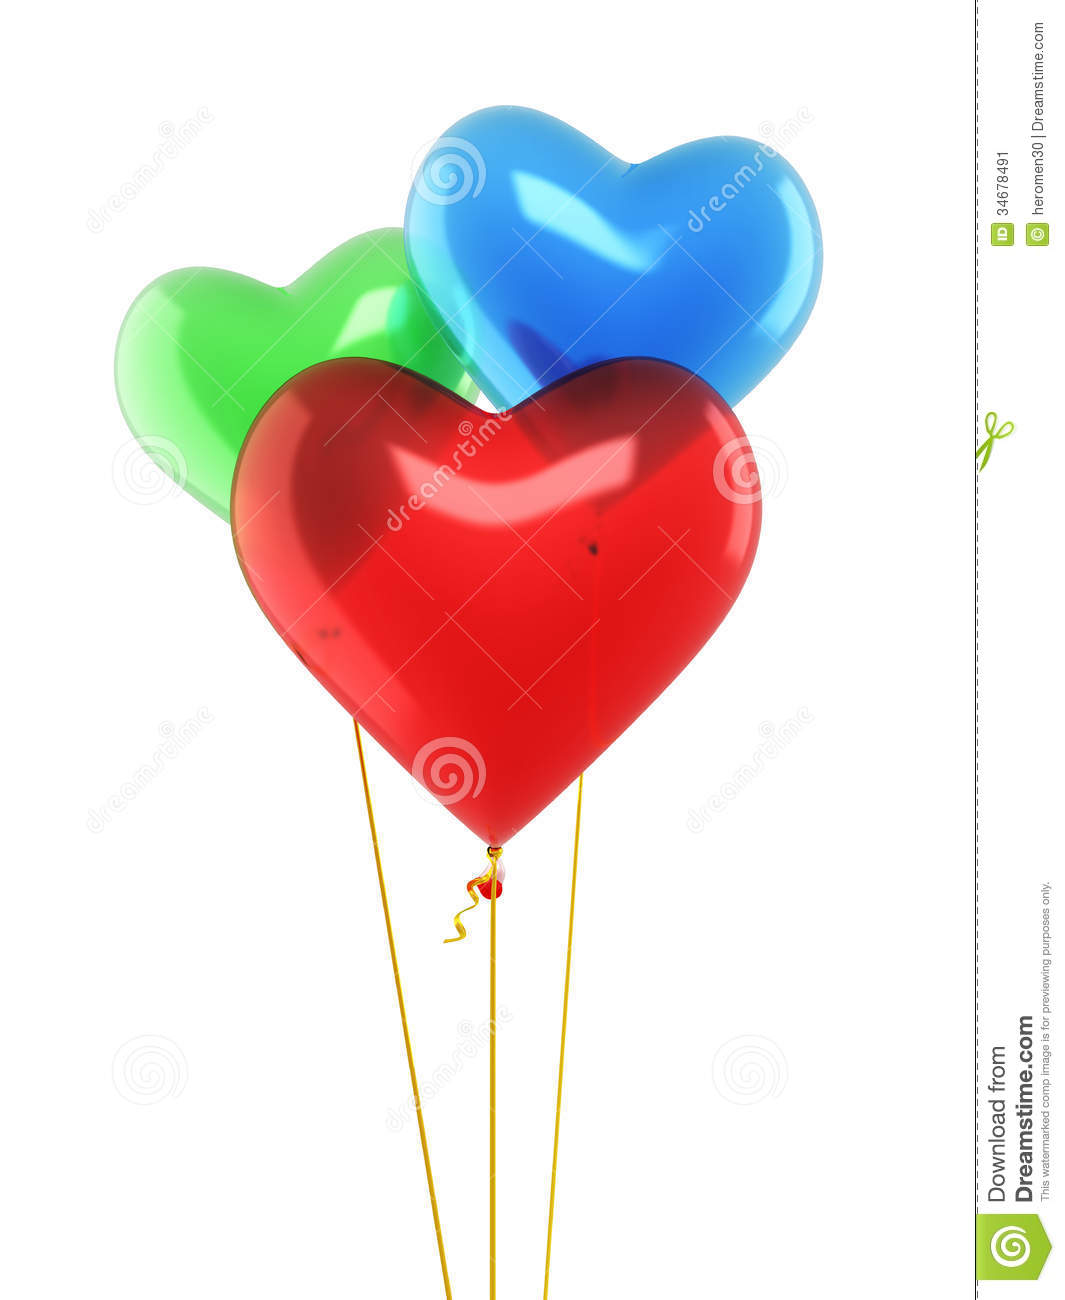 Green and blue balloons - Red Blue Green Heart Balloons Stock Image